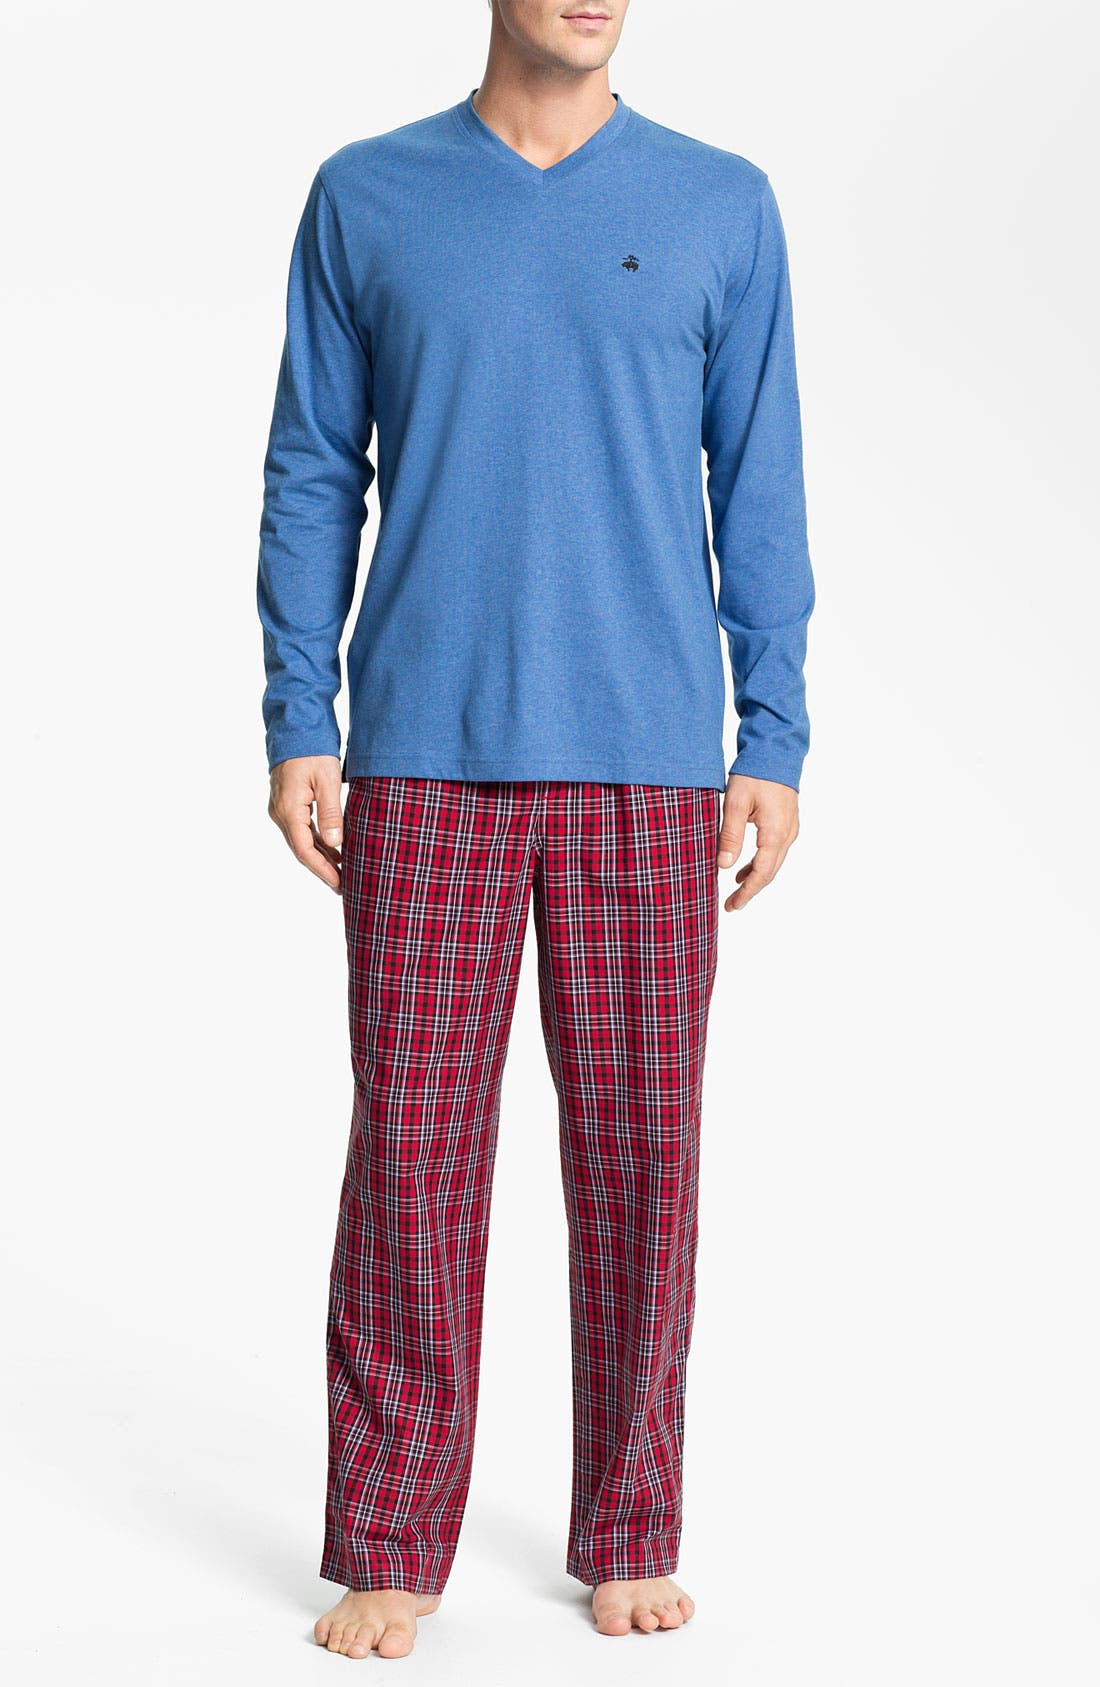 Alternate Image 1 Selected - Brooks Brothers Cotton Pajama Set